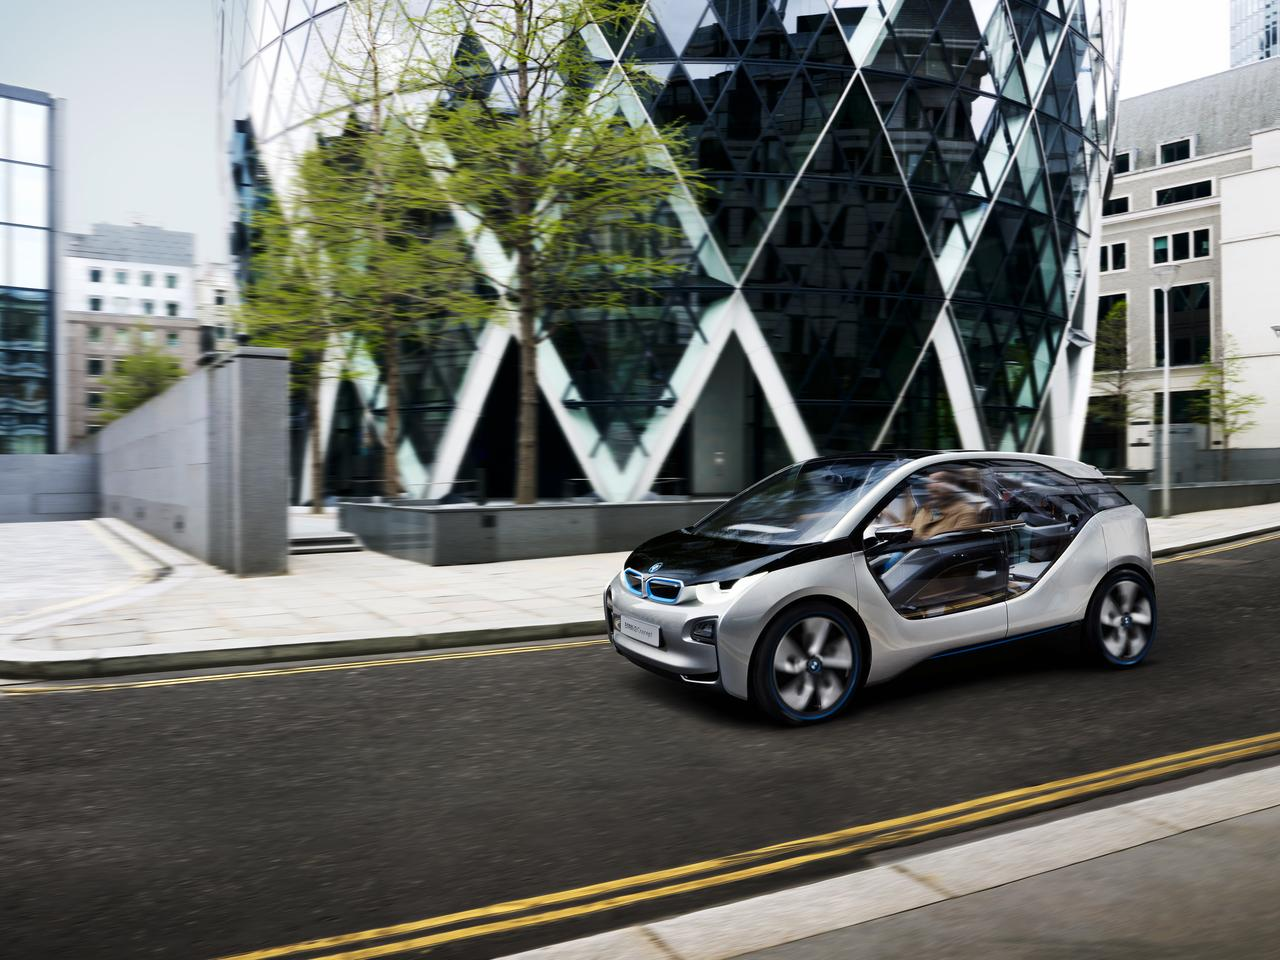 BMW unveiled the latest version of the i3 over the summer